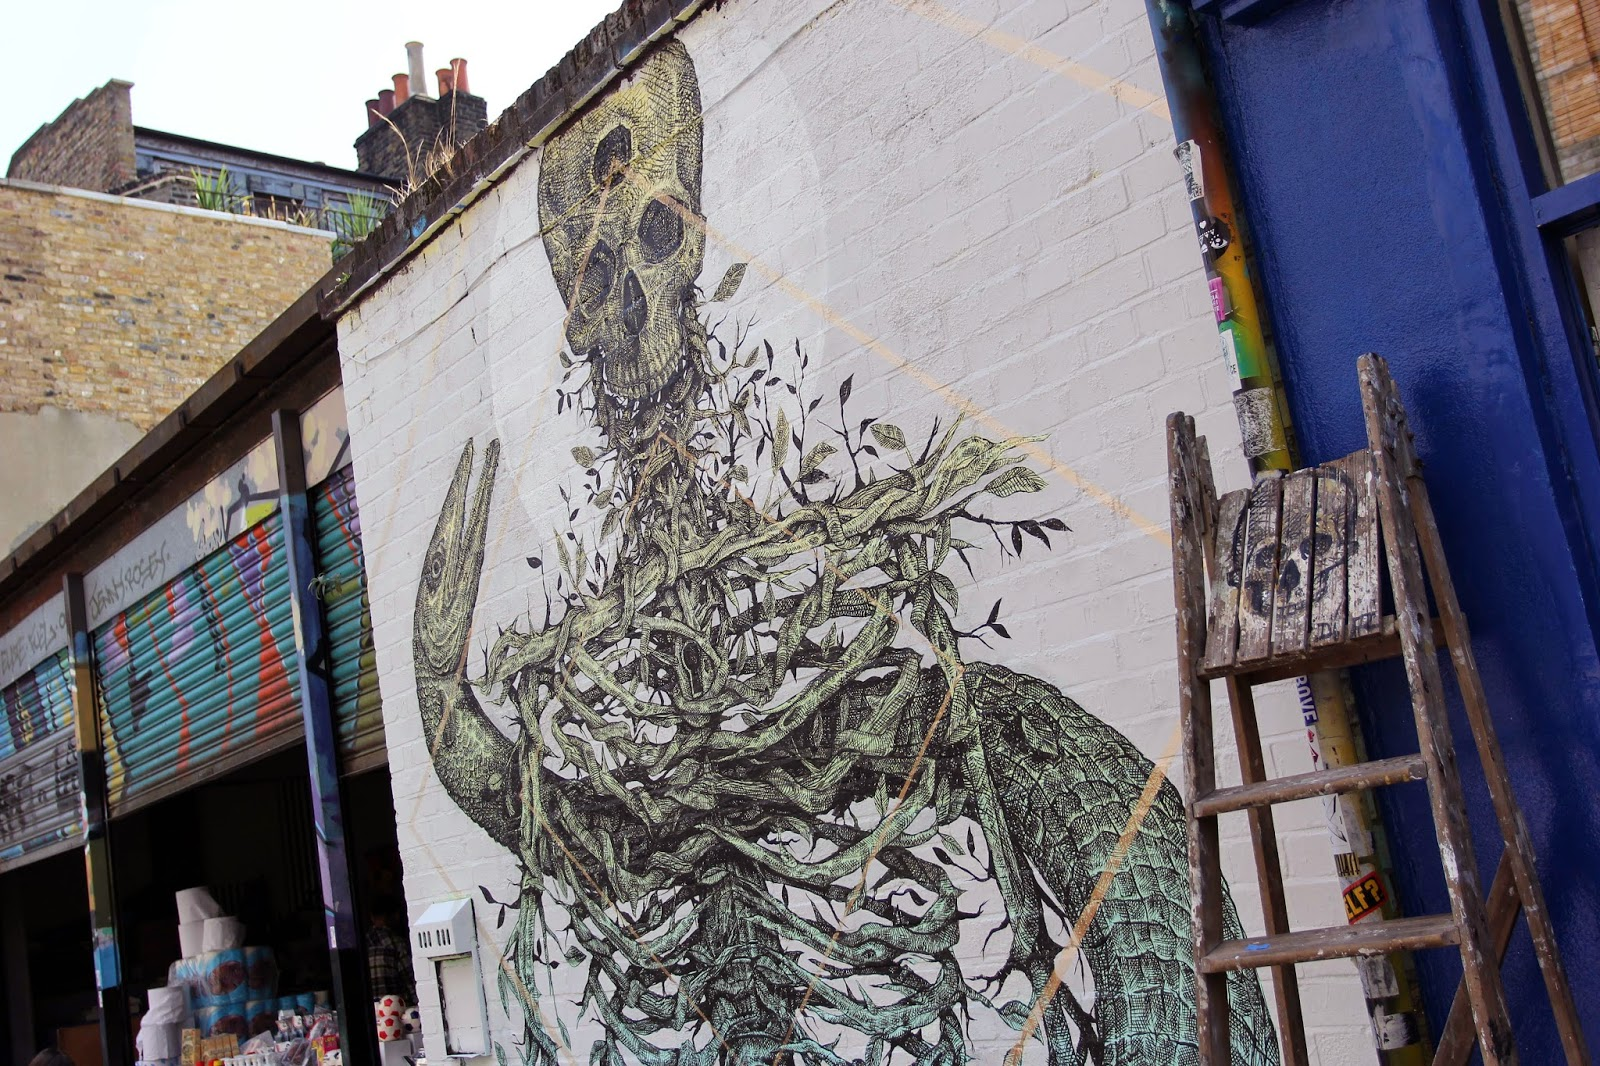 alexis-diaz-the-cage-new-mural-in-london-04